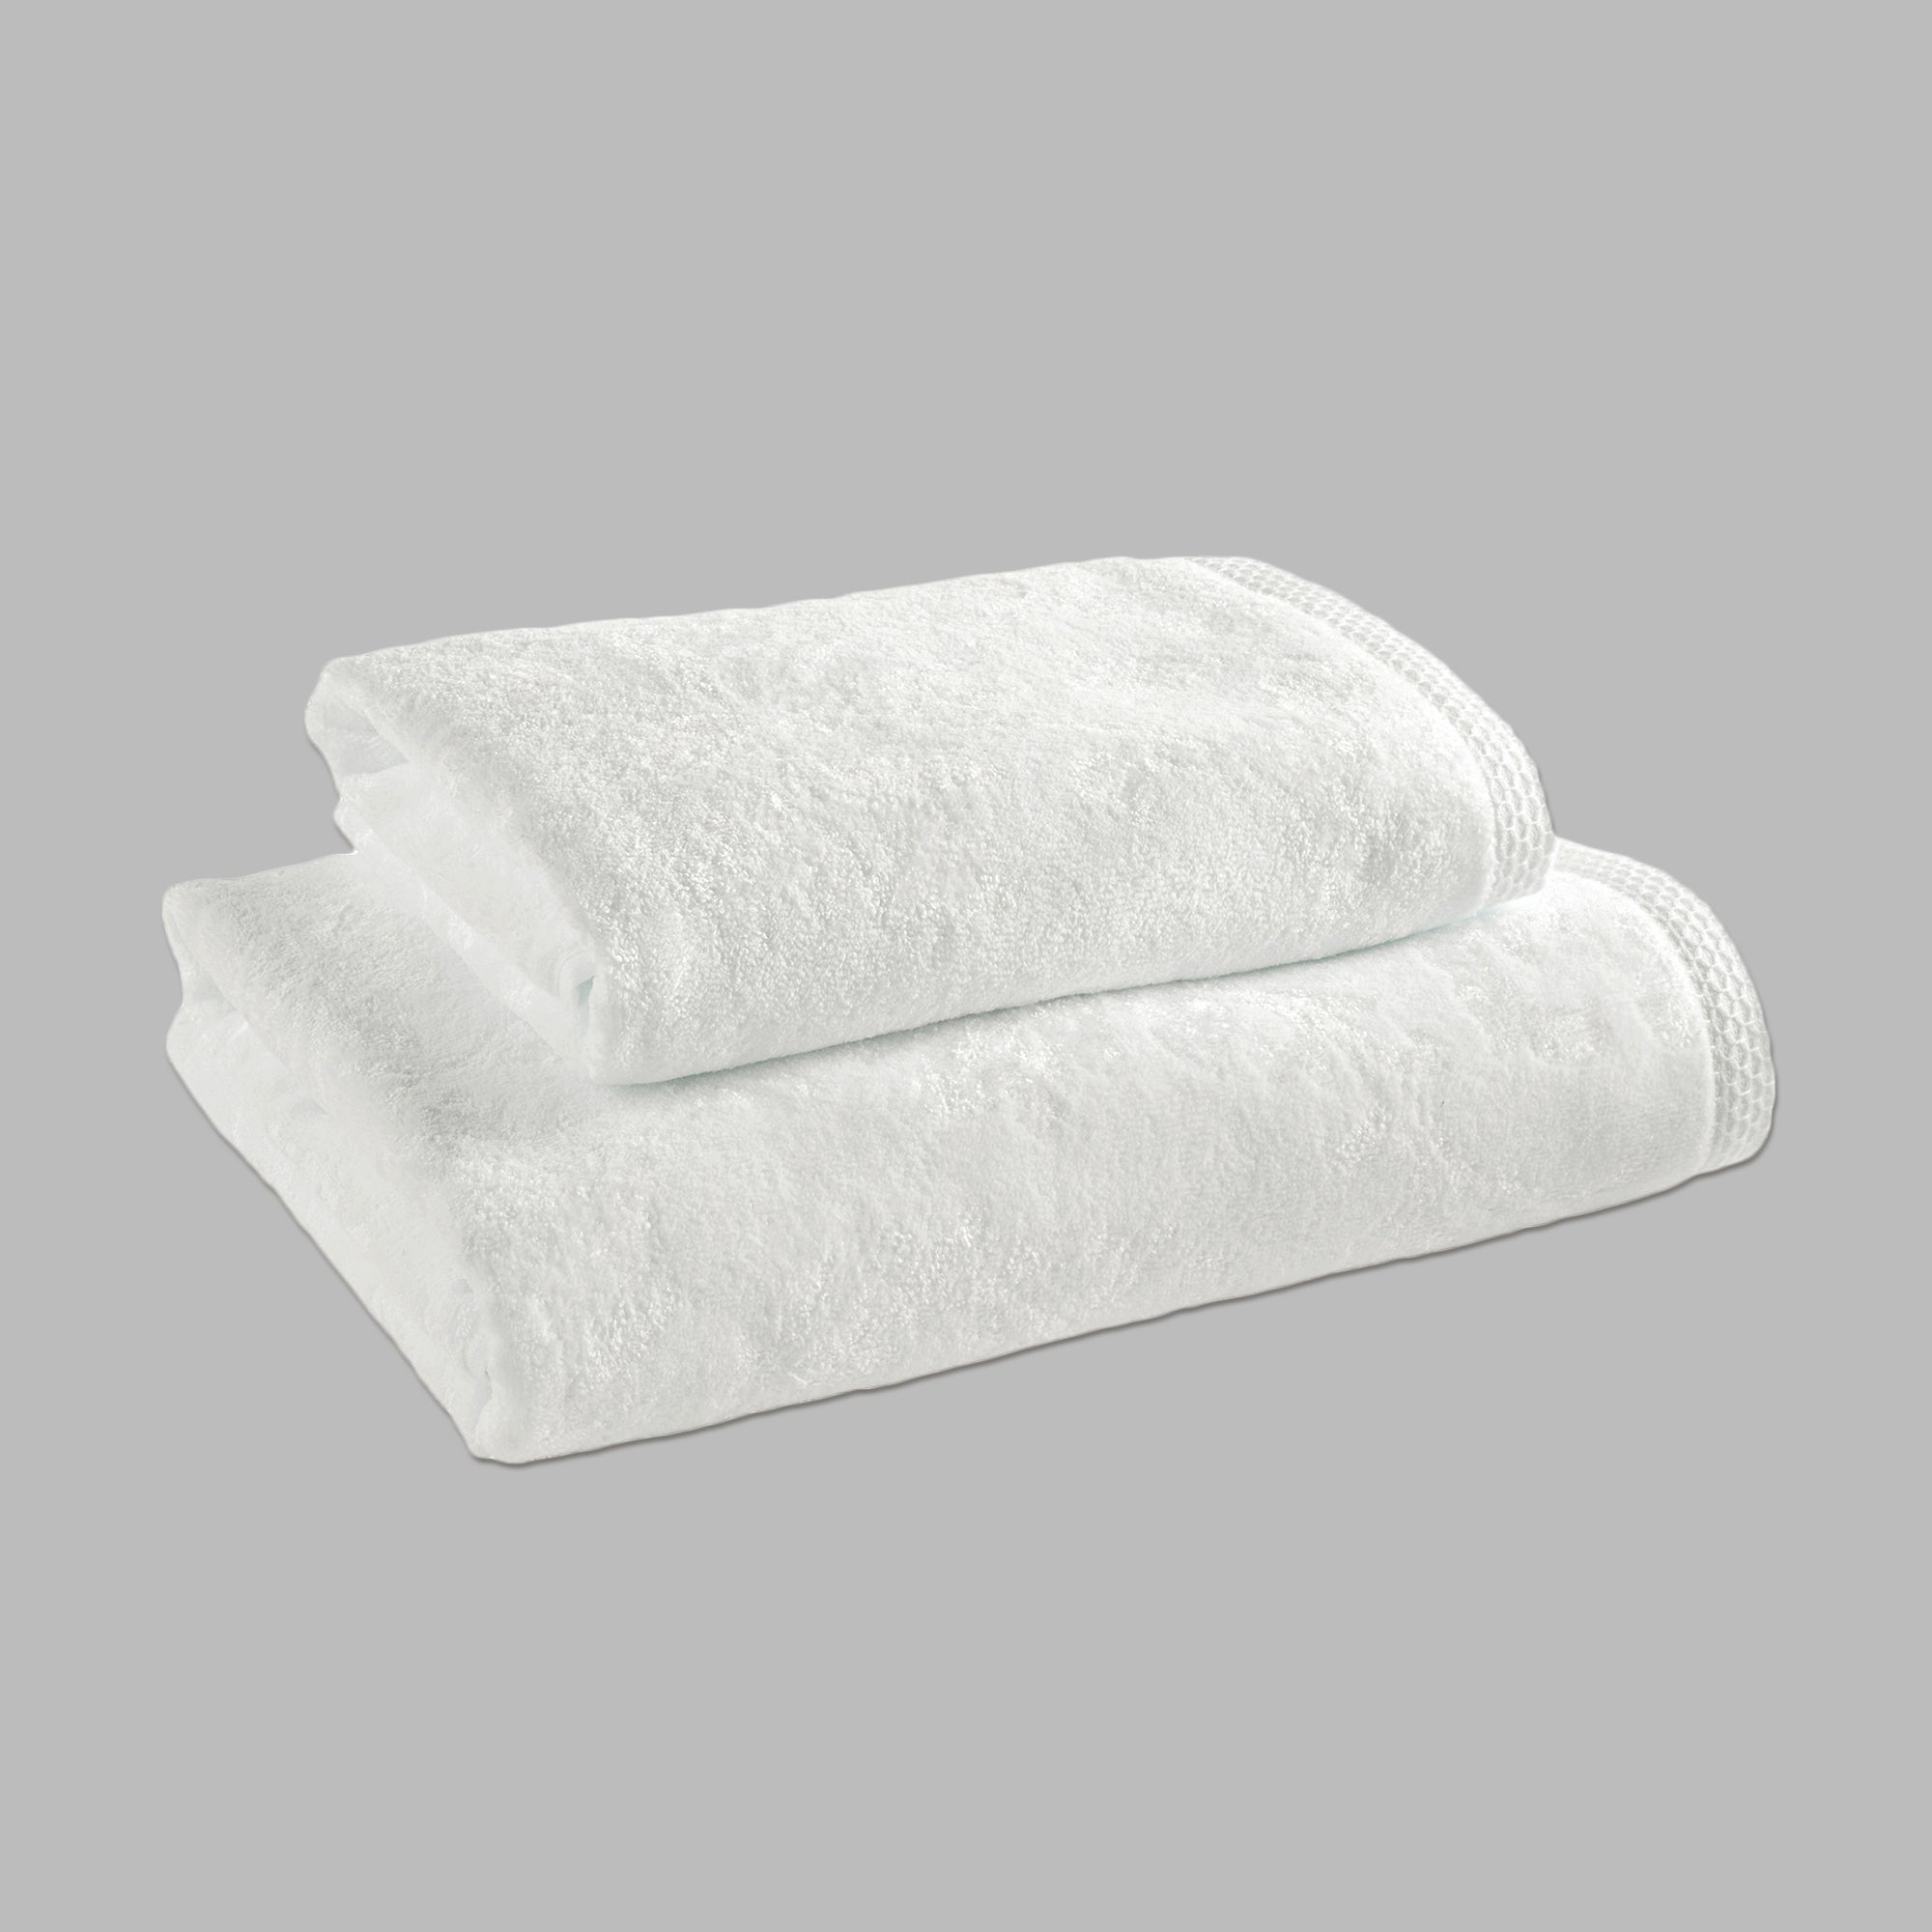 Cream Damask Modal Towel